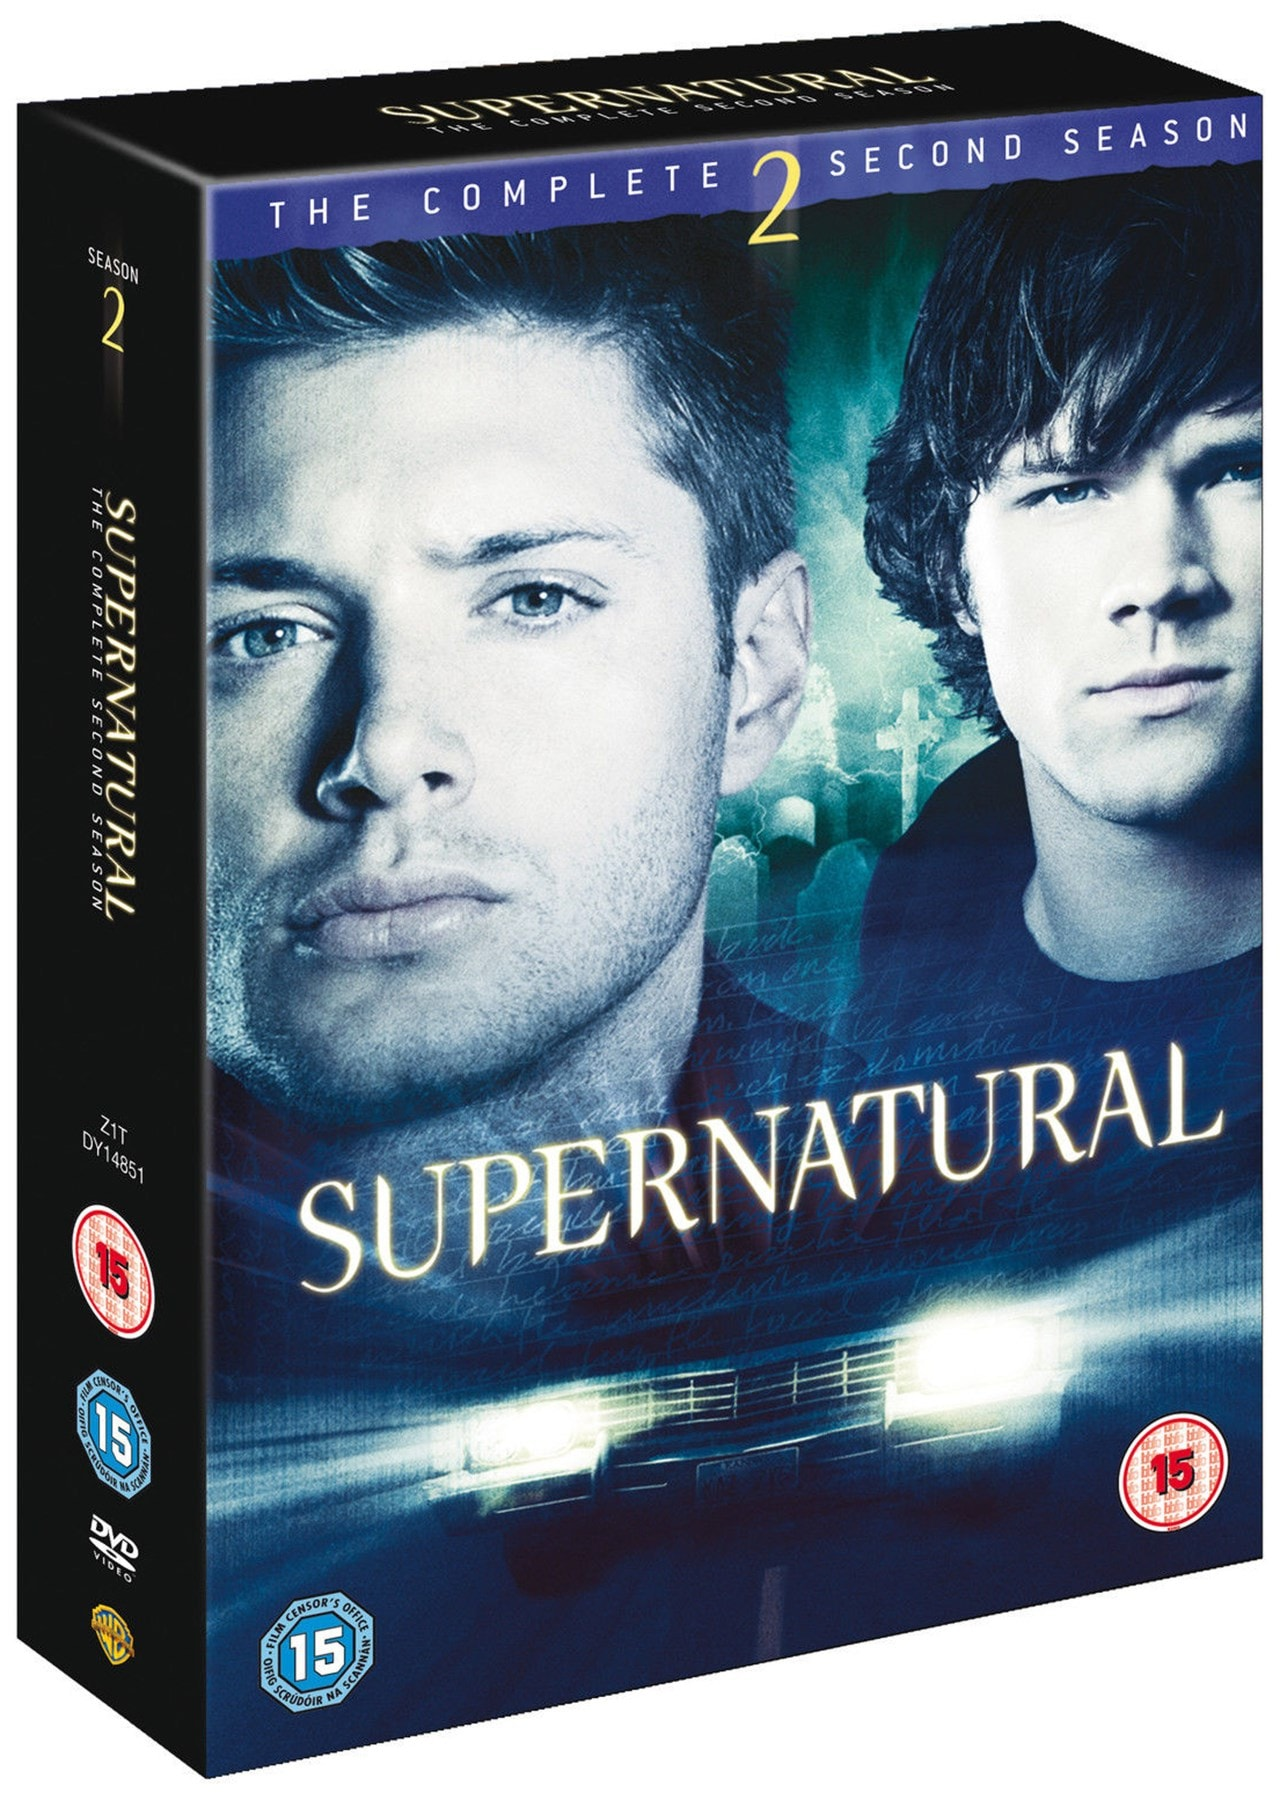 Supernatural: The Complete Second Season - 2